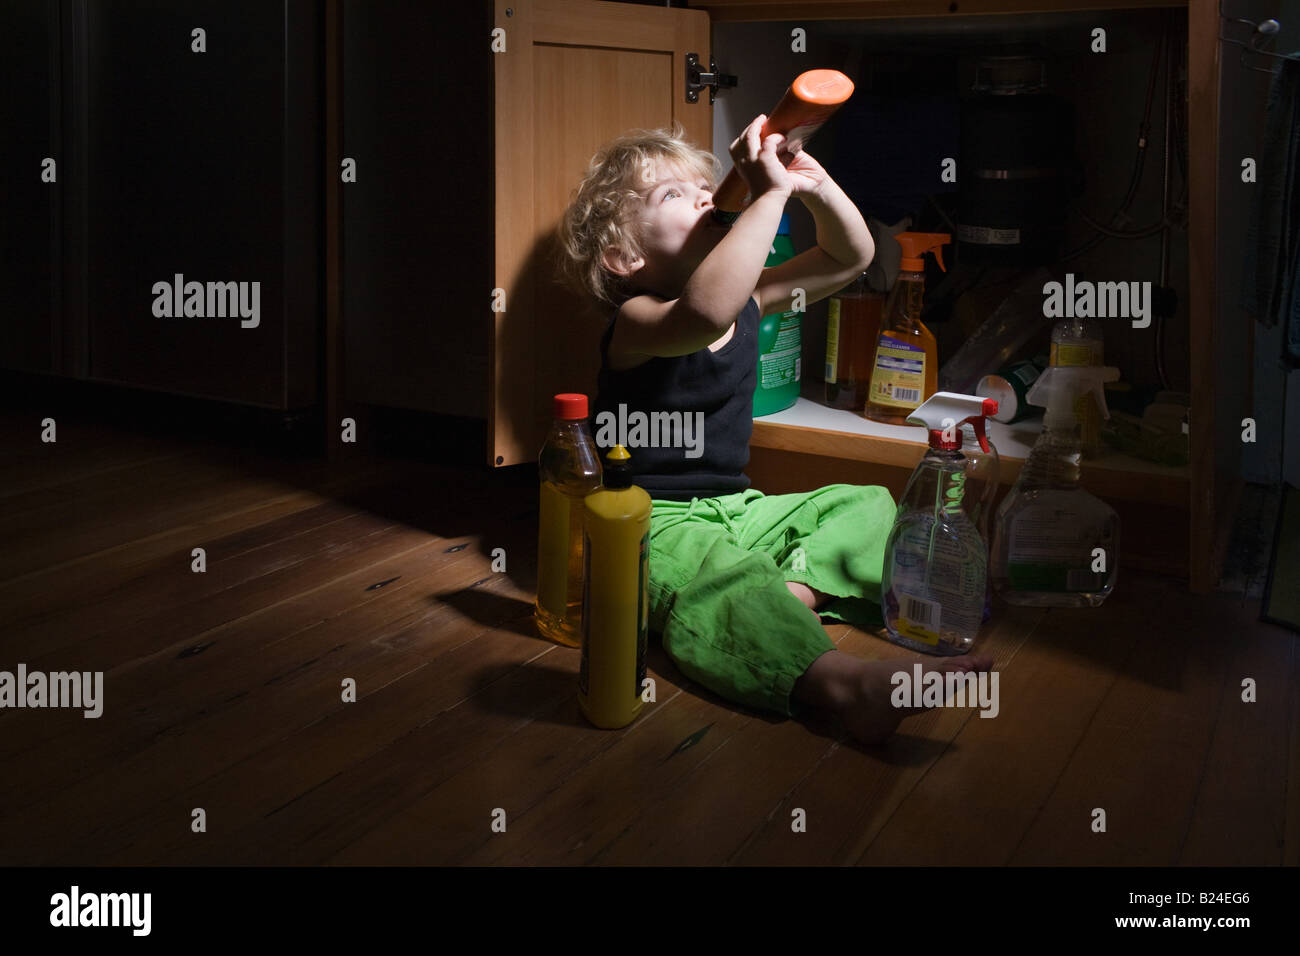 Boy drinking cleaning product Stock Photo